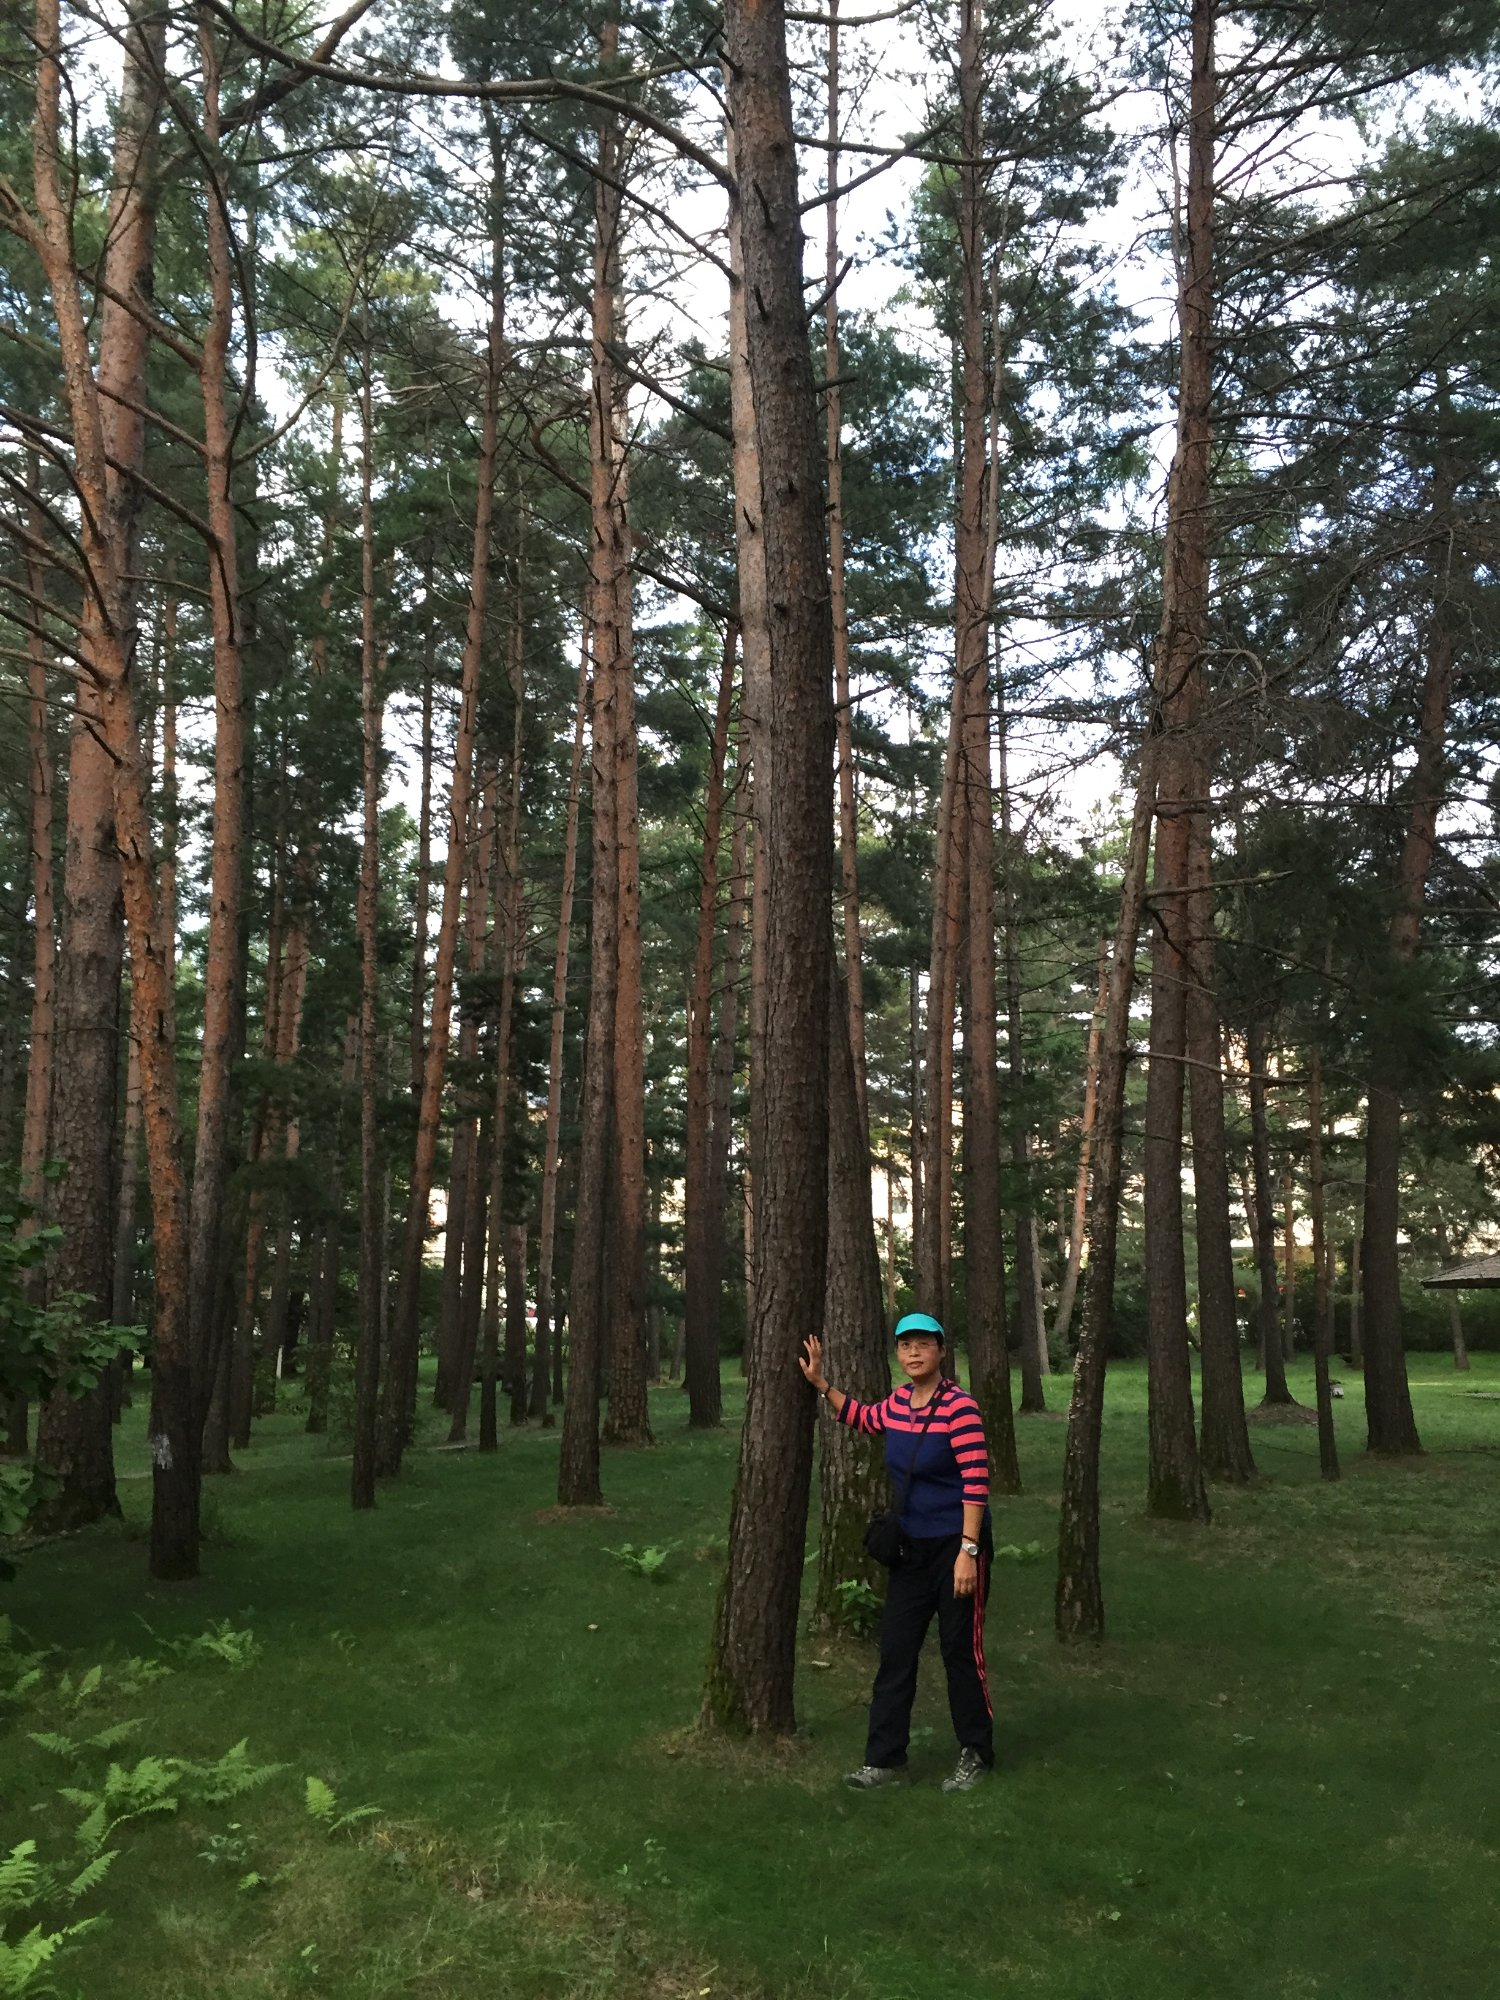 pine trees in the park